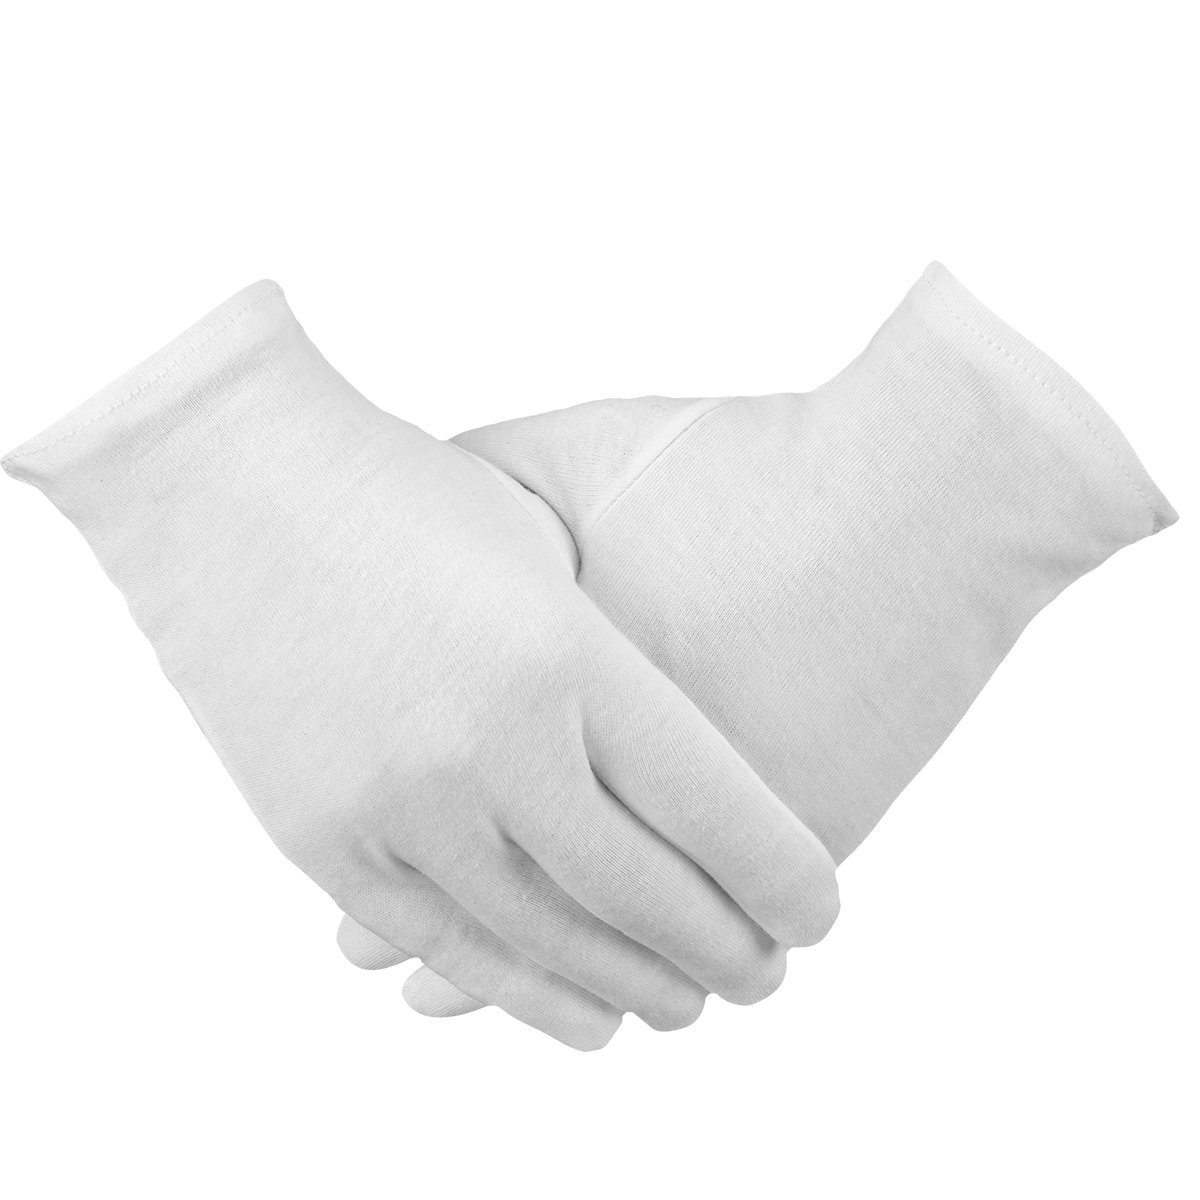 Madholly 12 pairs Moisturizing Cotton Gloves White Cosmetic Gloves Hand SPA Gloves Moisture Enhancing Gloves for Dry Hands and Beauty by Madholly (Image #1)